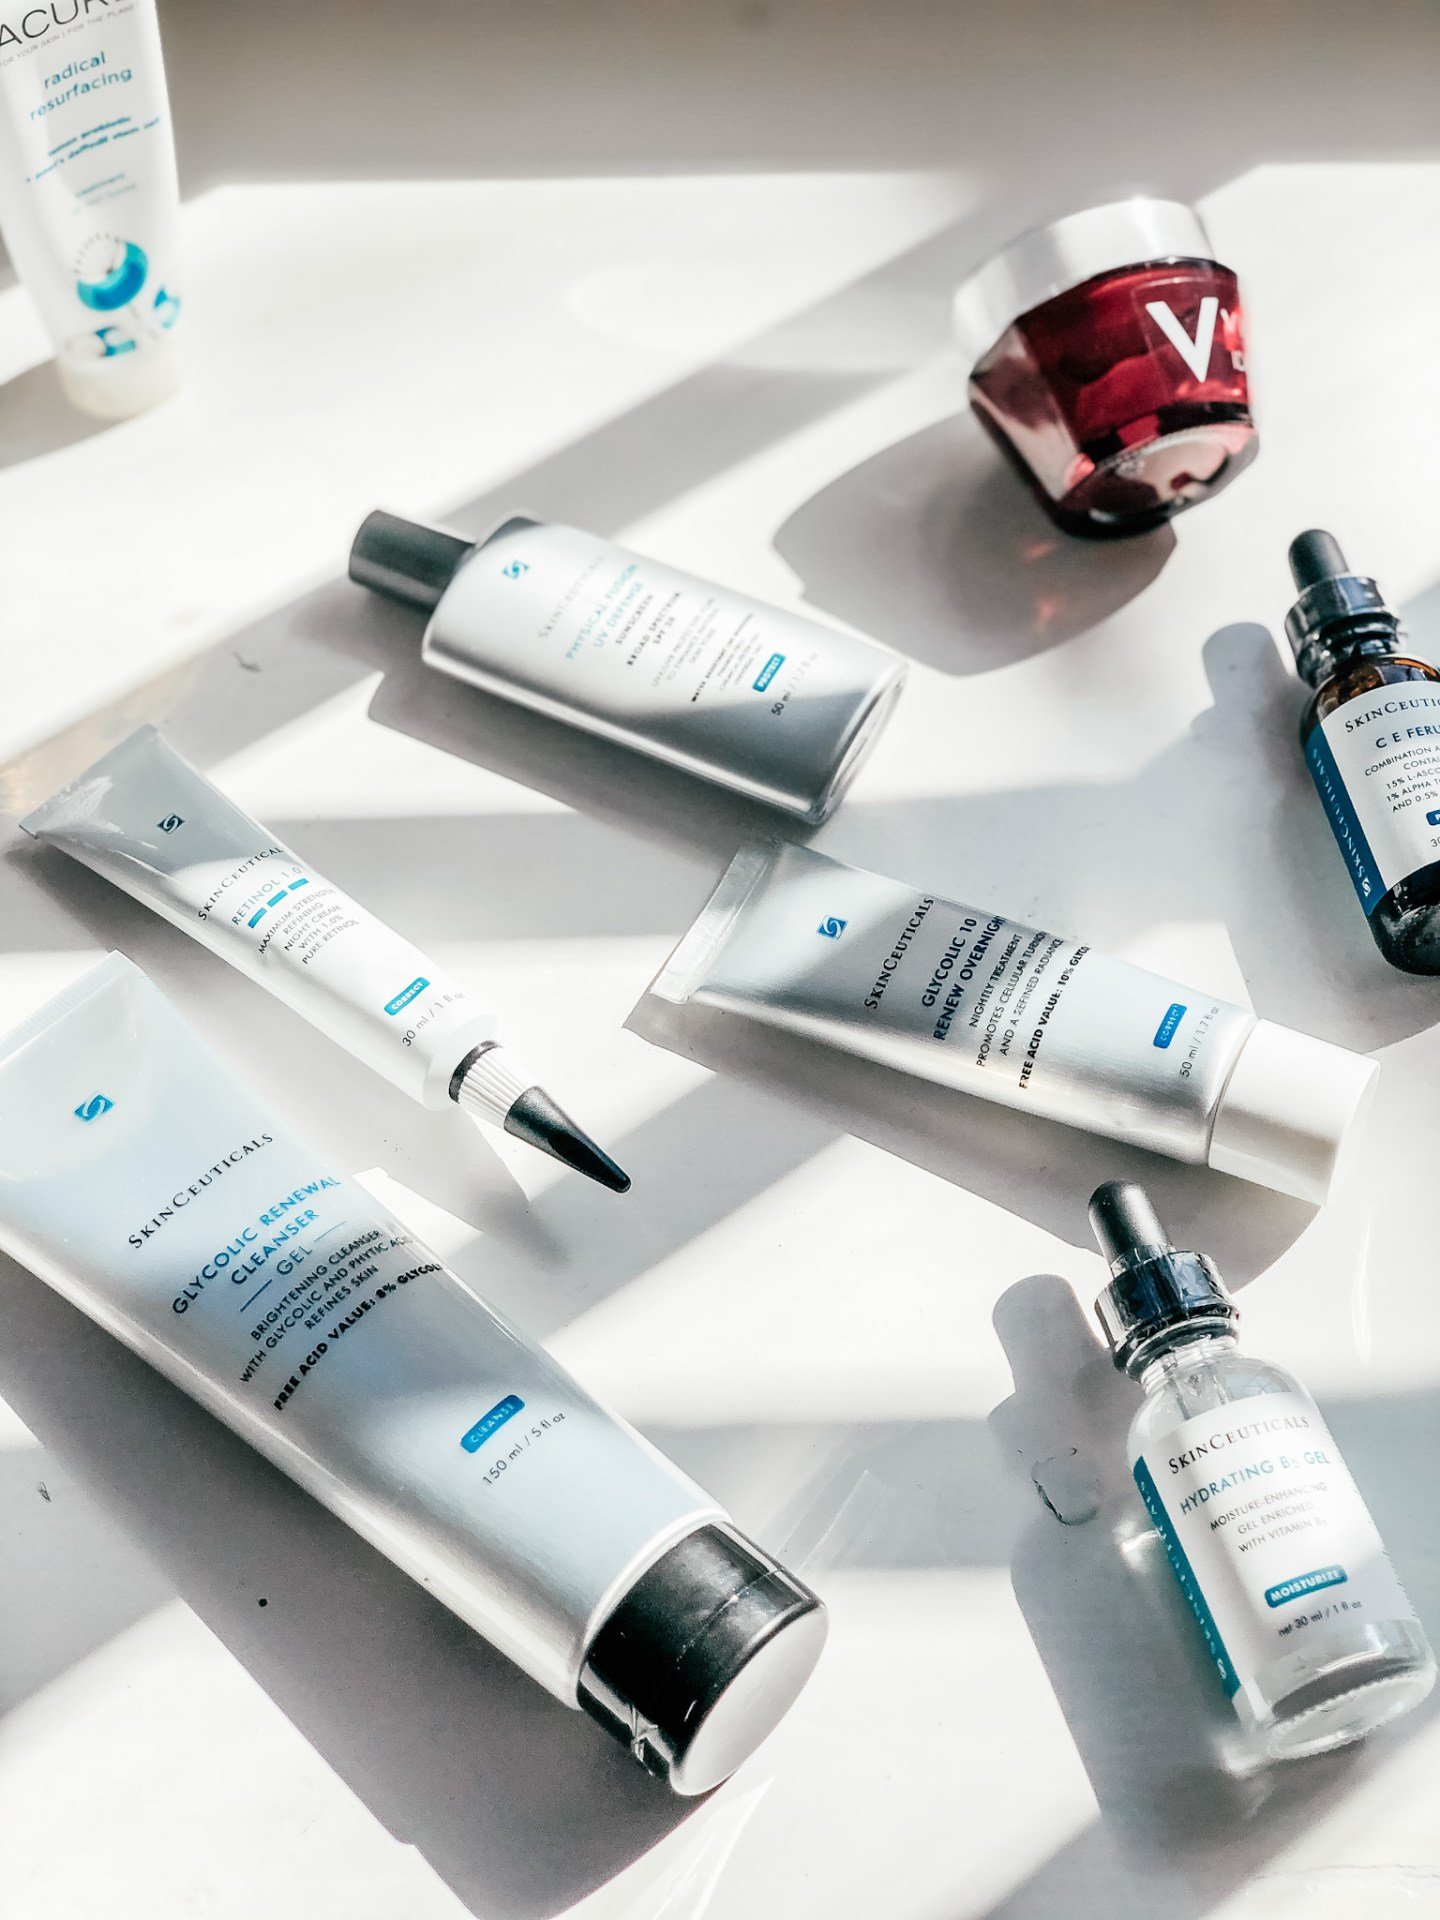 The 9 Best Skincare Products and Why They Work - Vichy Idealist Nighttime Lotion, Skinceuticals Glycolic Cleanser, Skinceuticals Glycolic 10 and other Skinceuticals Products